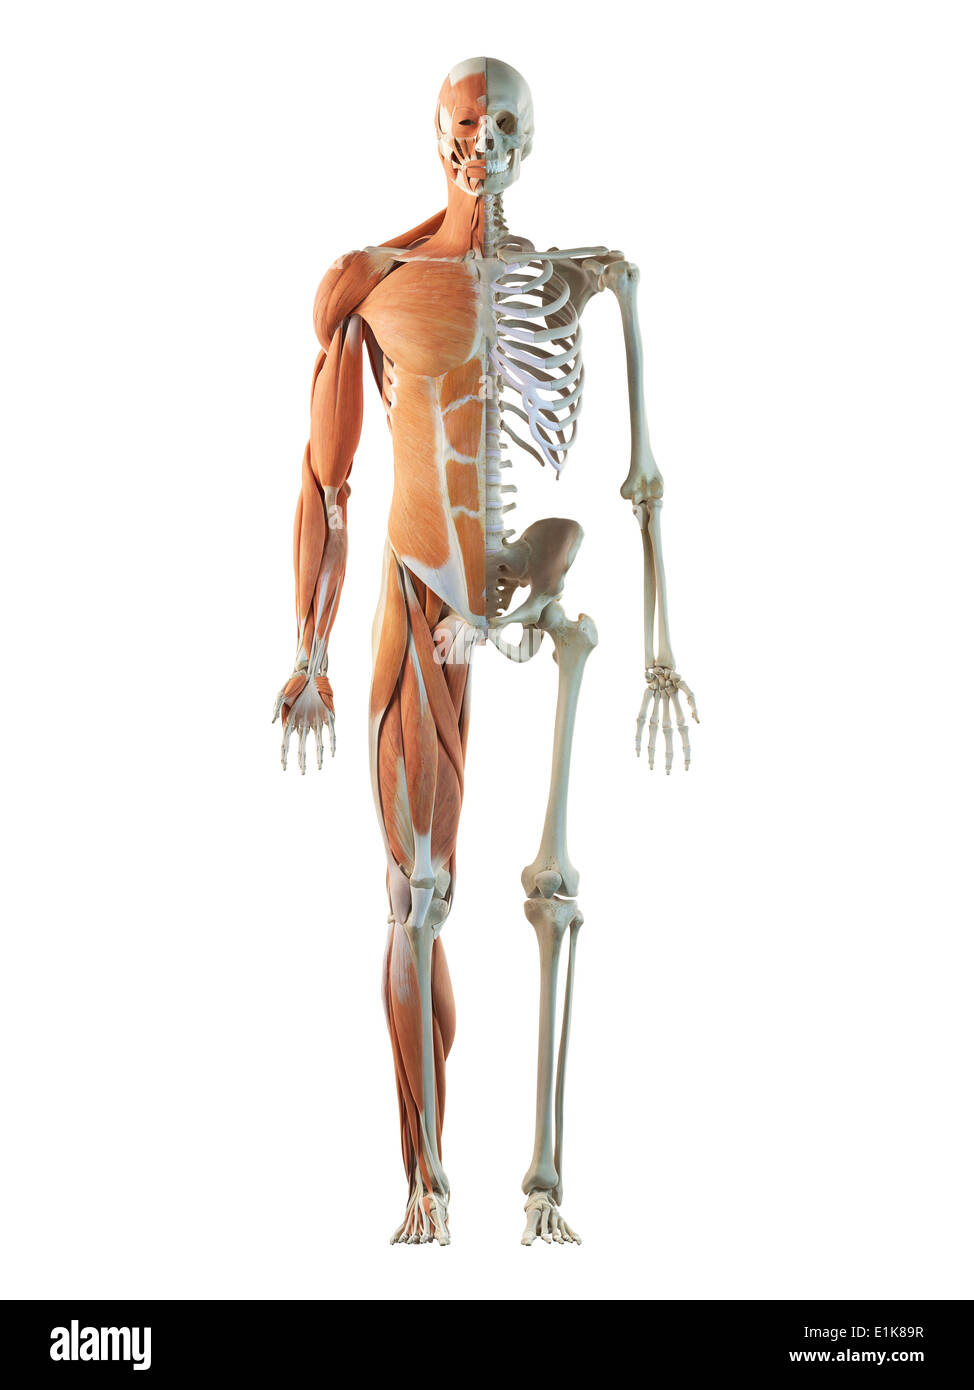 human musculoskeletal system cut away computer artwork stock photo, Muscles